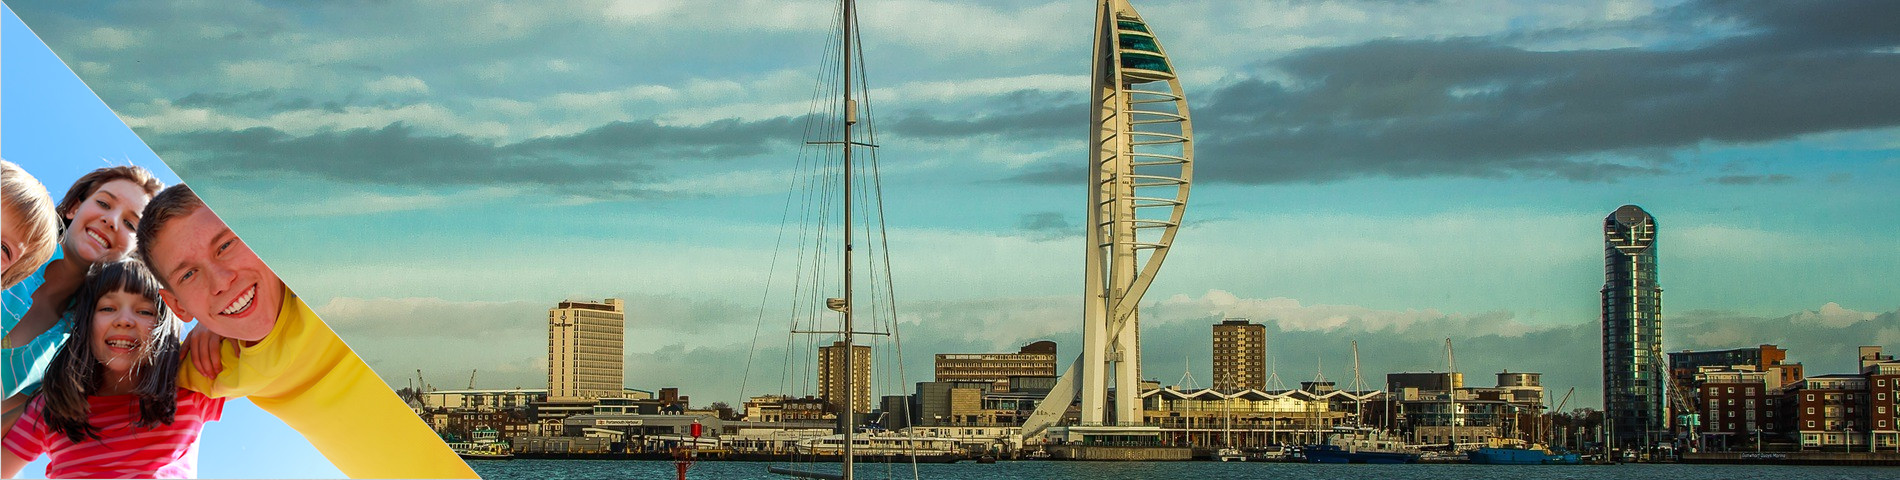 Portsmouth - Curs Júnior (6-18 anys)